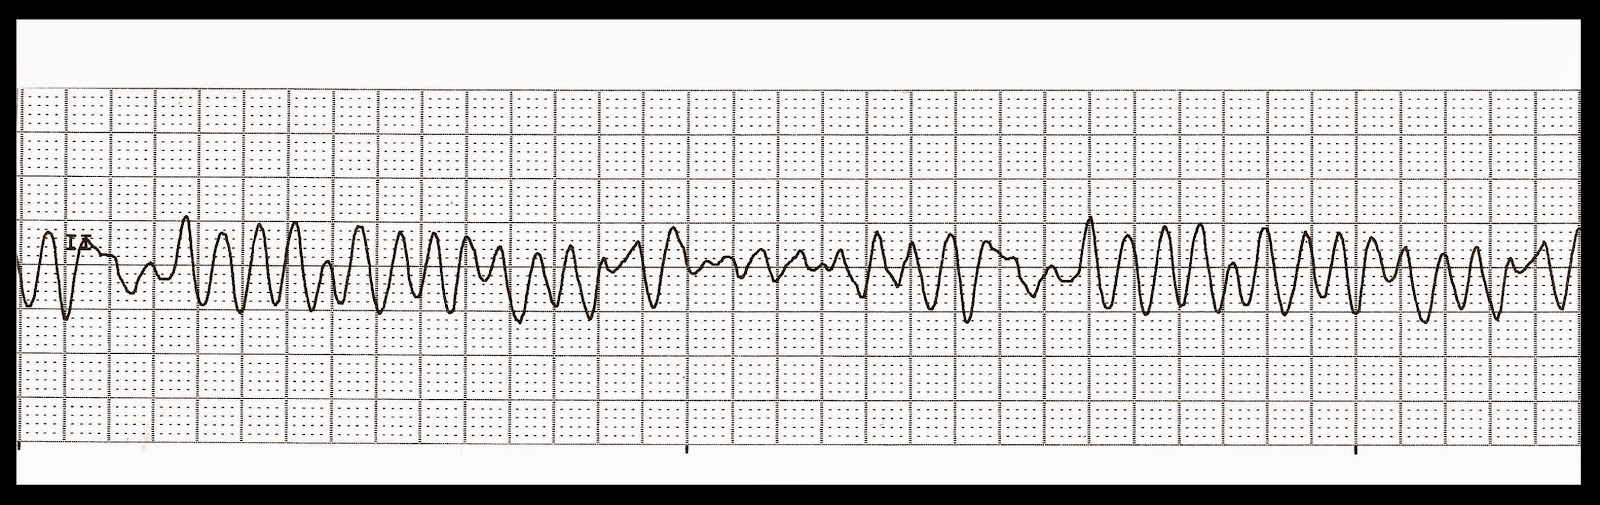 Float Nurse: EKG Rhythm Quiz 230